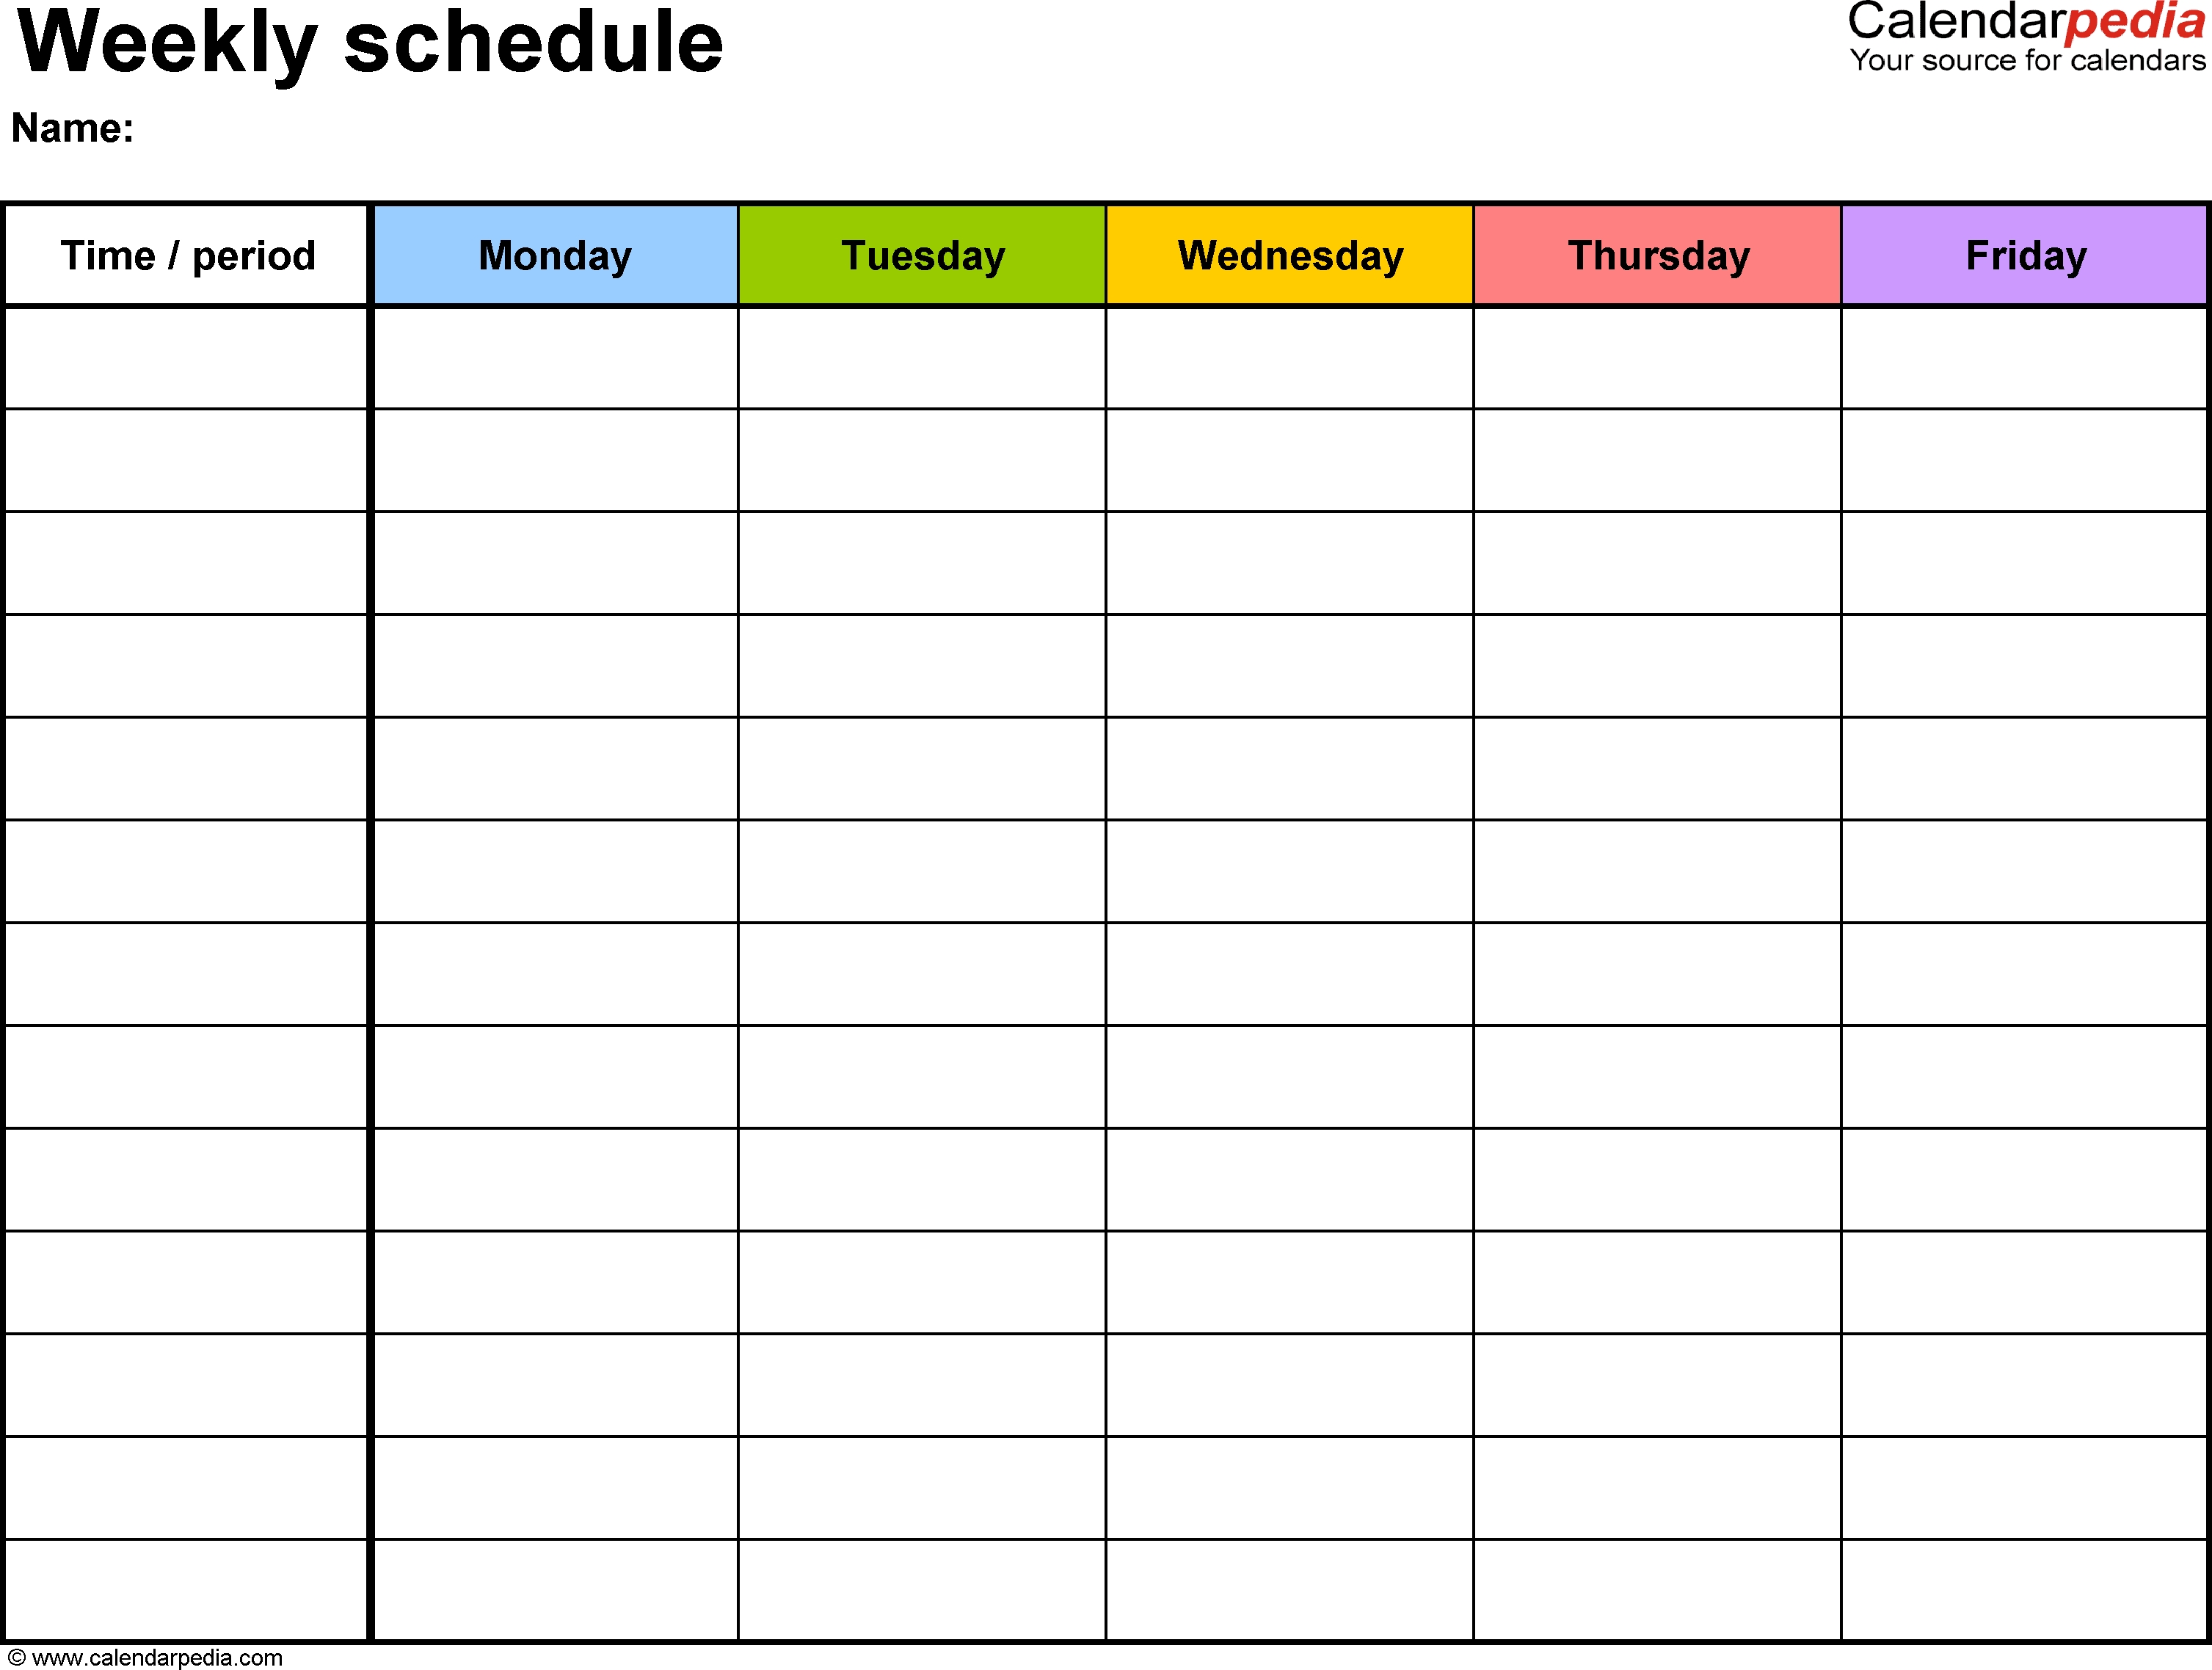 Free Weekly Schedule Templates For Excel - 18 Templates with regard to Week Schedule Template With Times